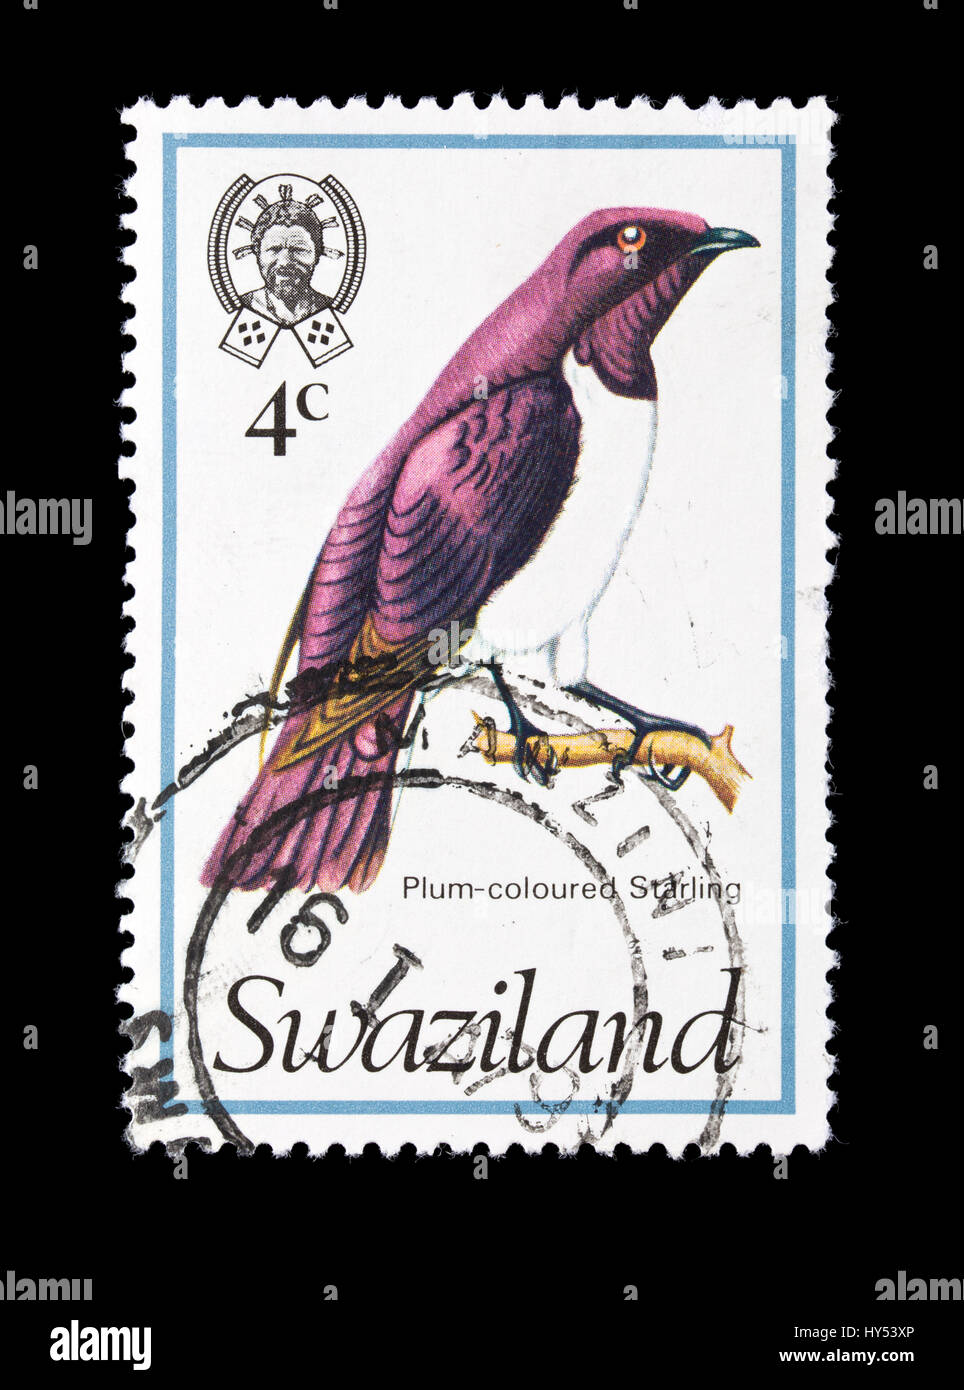 Postage stamp from Swaziland depicting a Plum-coloured Starling (Cinnyricinclus leucogaster) Stock Photo